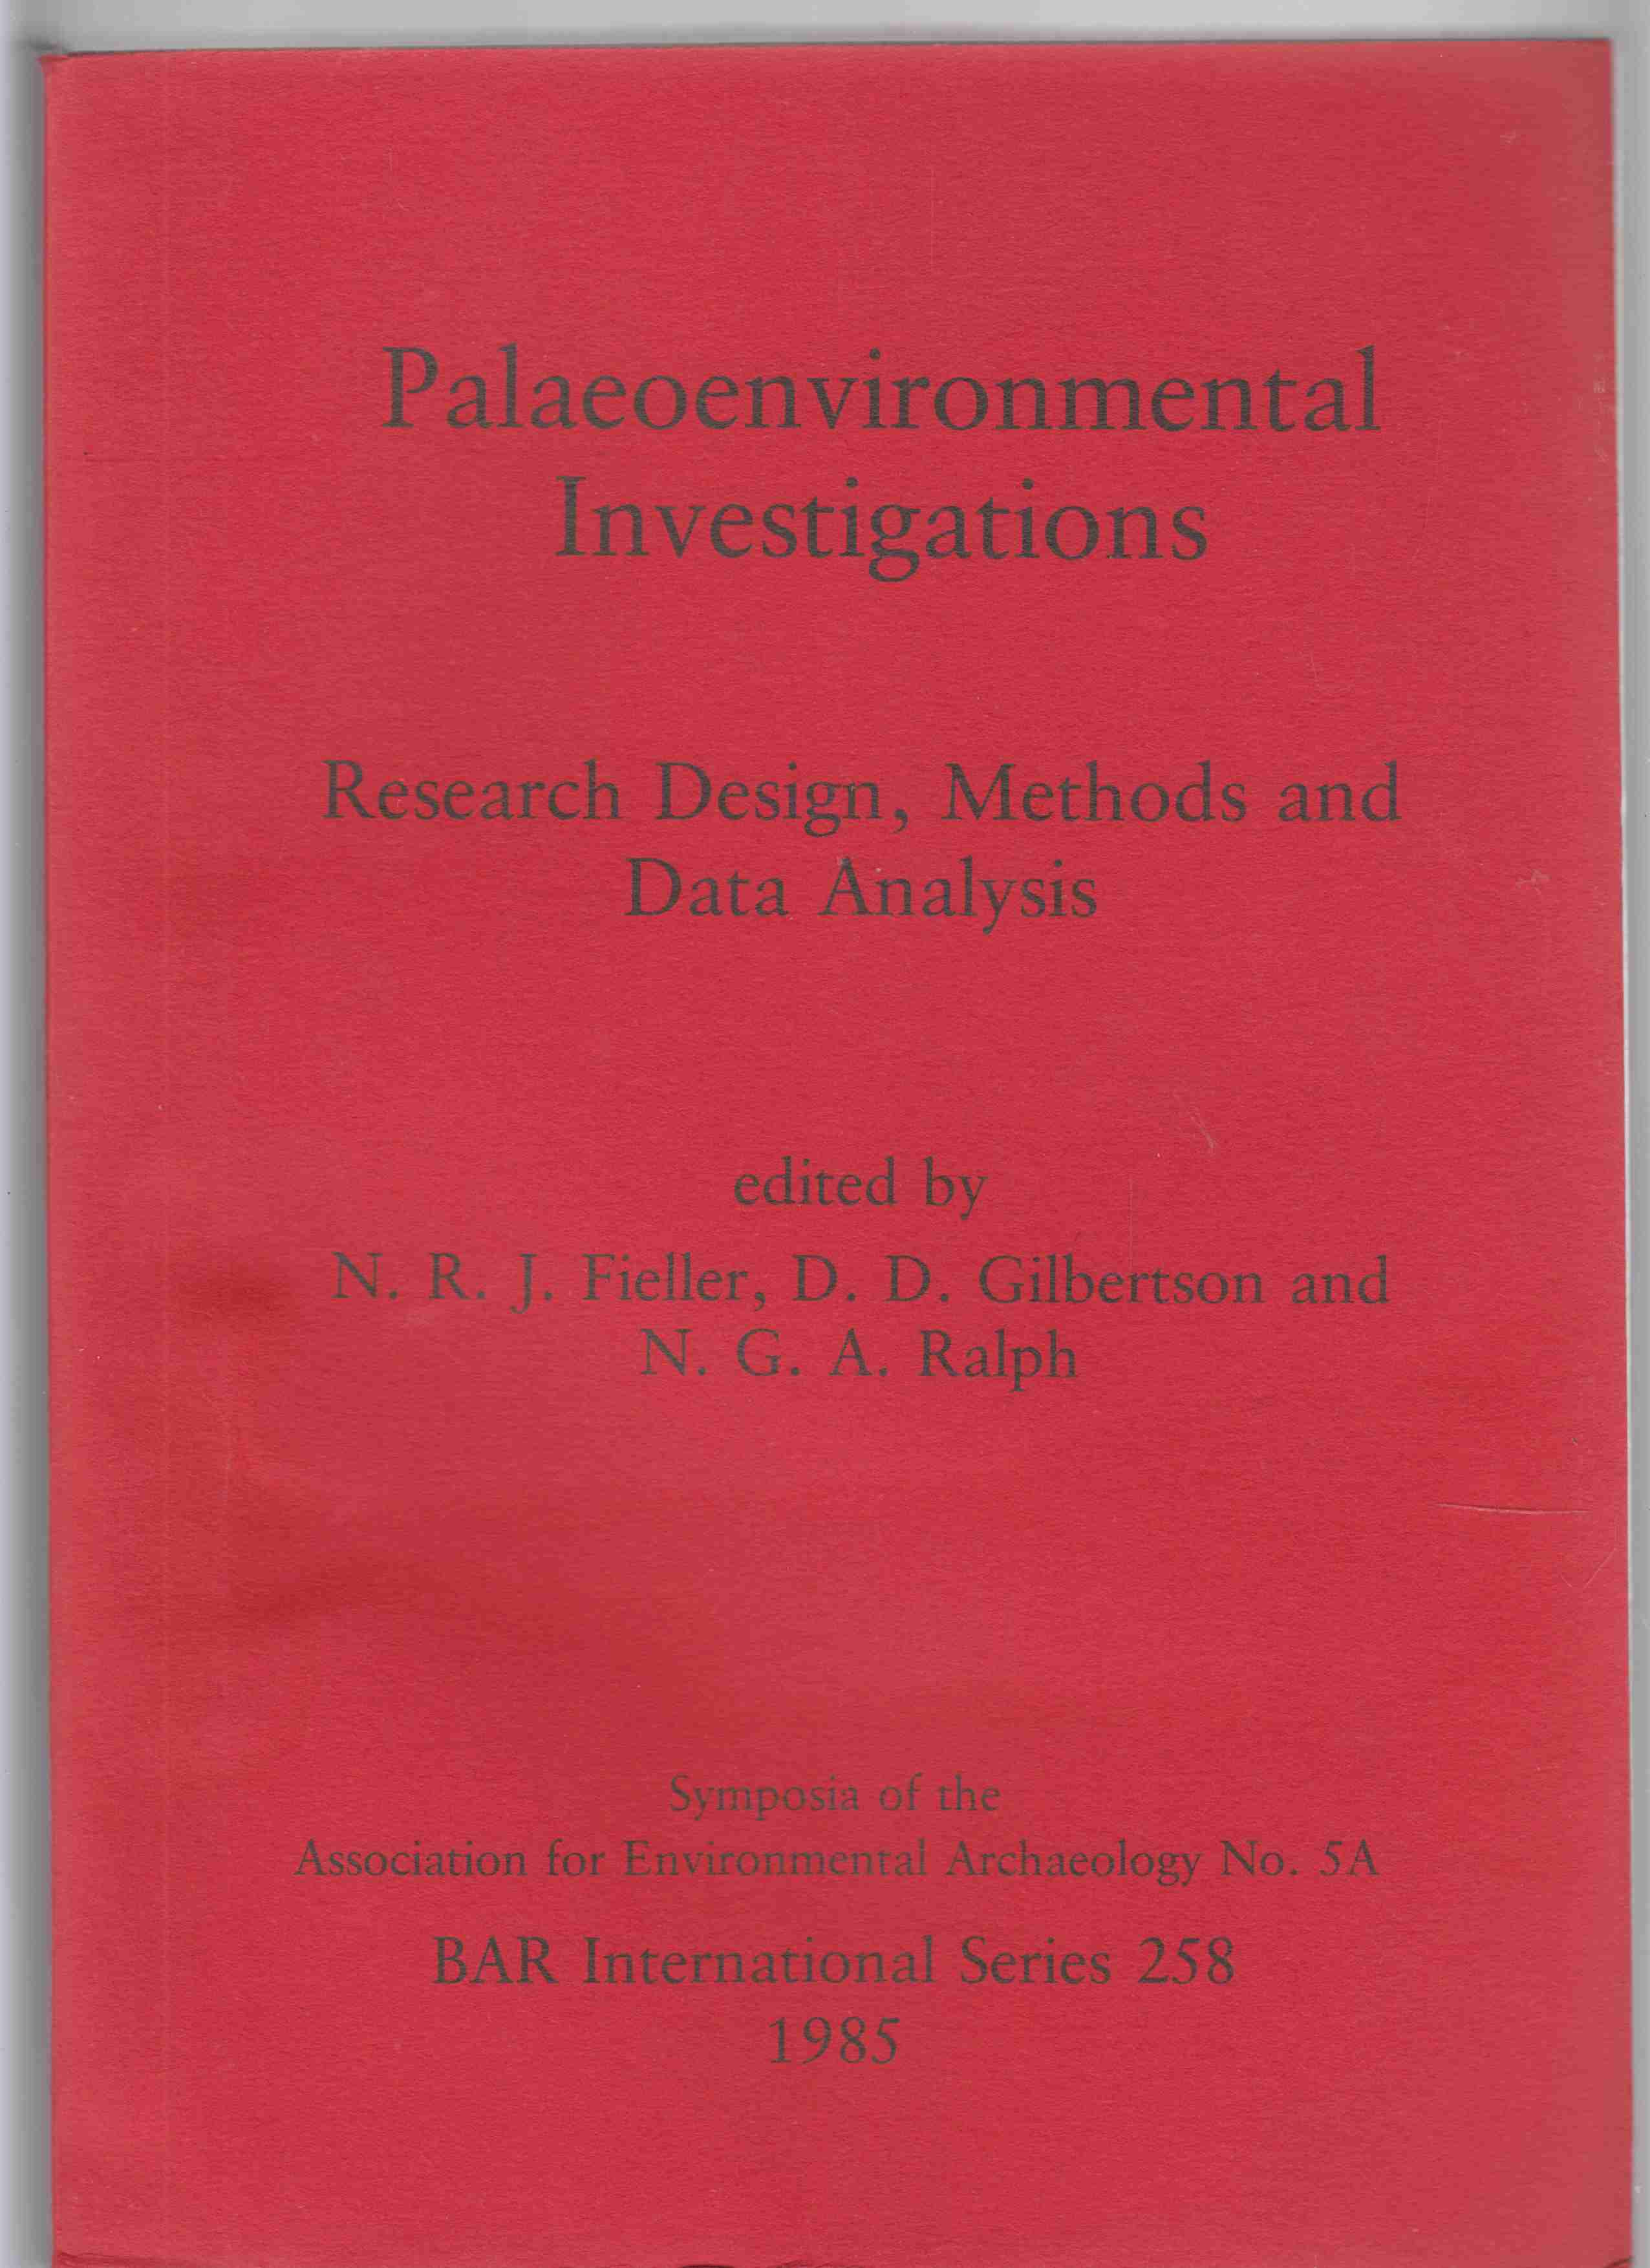 Image for Paleobiological Investigations Research Design, Methods and Data Analysis Symposia of the Association for Environmental Archaeology No. 5A